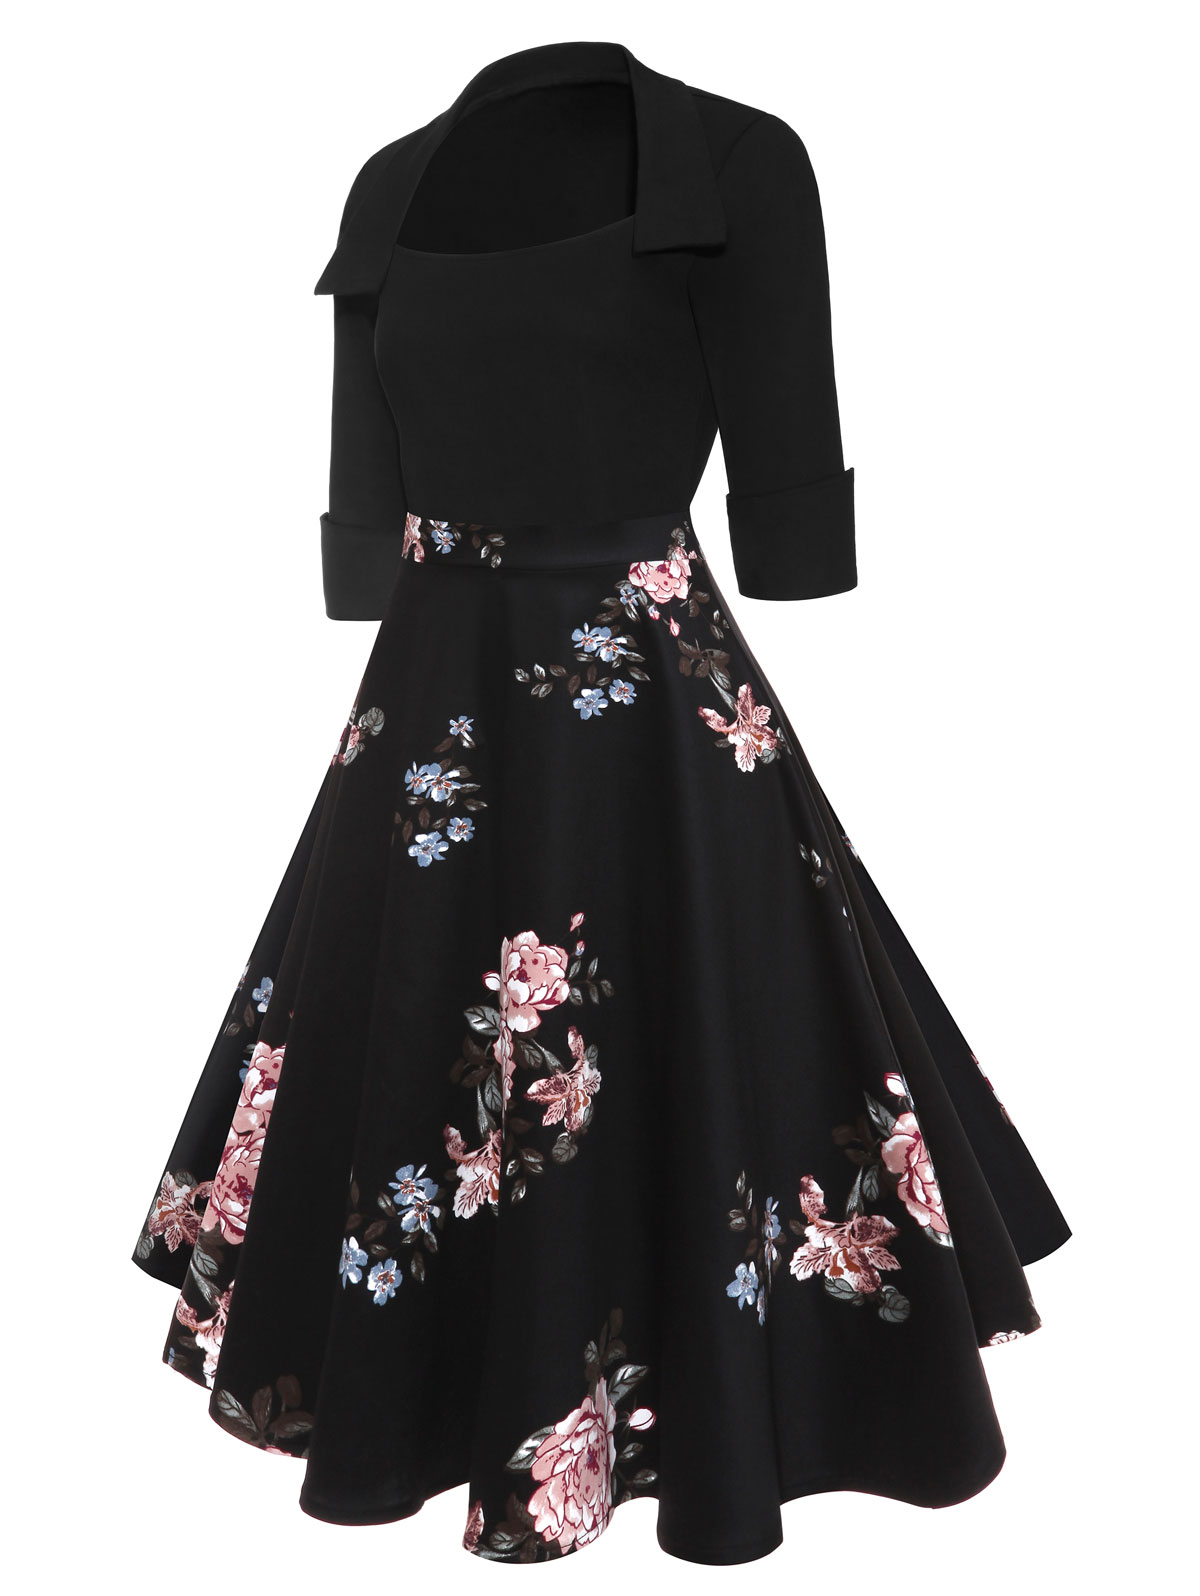 27575e90b Compre AZULINA Audrey Hepburn Vintage Party Dress Mujer Floral Flare ...